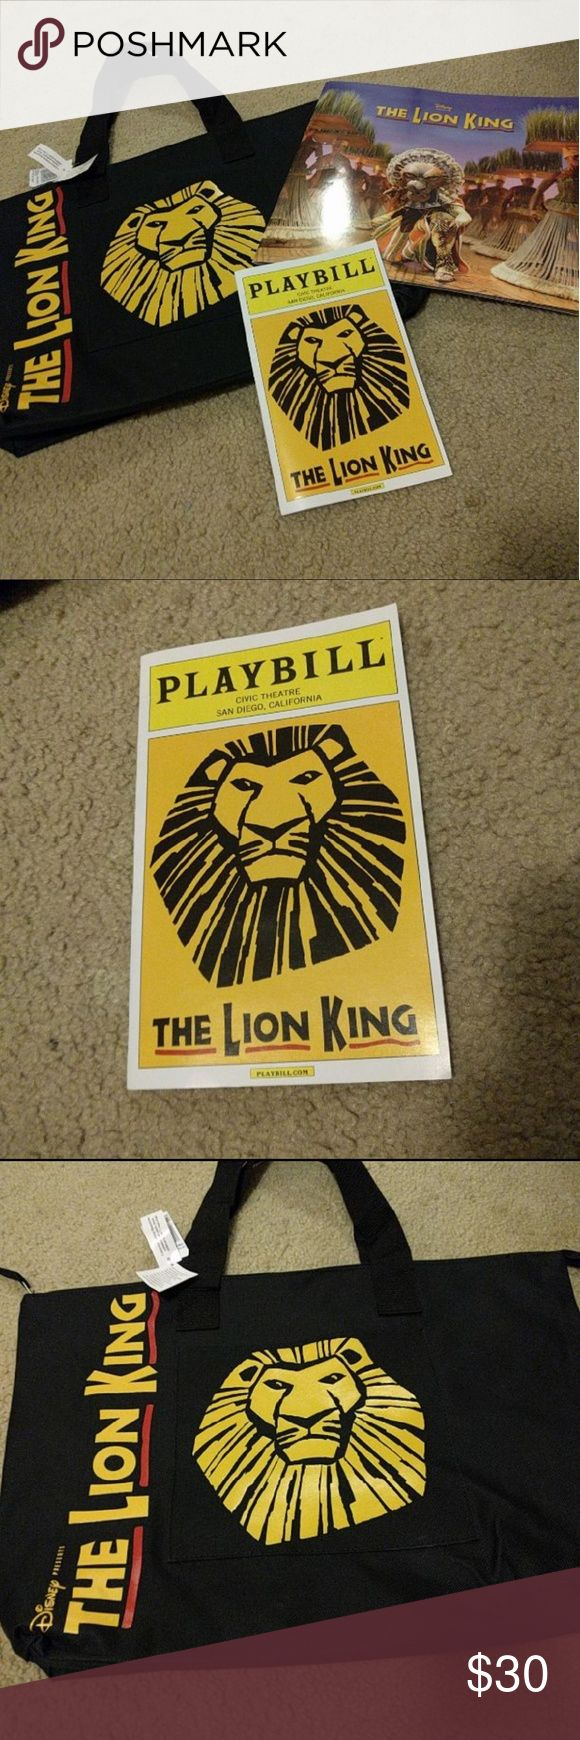 Lion King Broadway BUNDLE This bundle features three items from Disney's Broadway performance of the Lion King on tour in San Diego performed at the Civic Theatre.   - zippered tote bag with outside pocket - playbill -behind the scenes and in depth program  All authentic from the show. I saw and loved it but want this to go to a good home.   Bag has never been used. NWT. Only one side has the image. The other side is simple black.   This bundle is   Tags:  Lion Guard Disney Simba Mufasa…